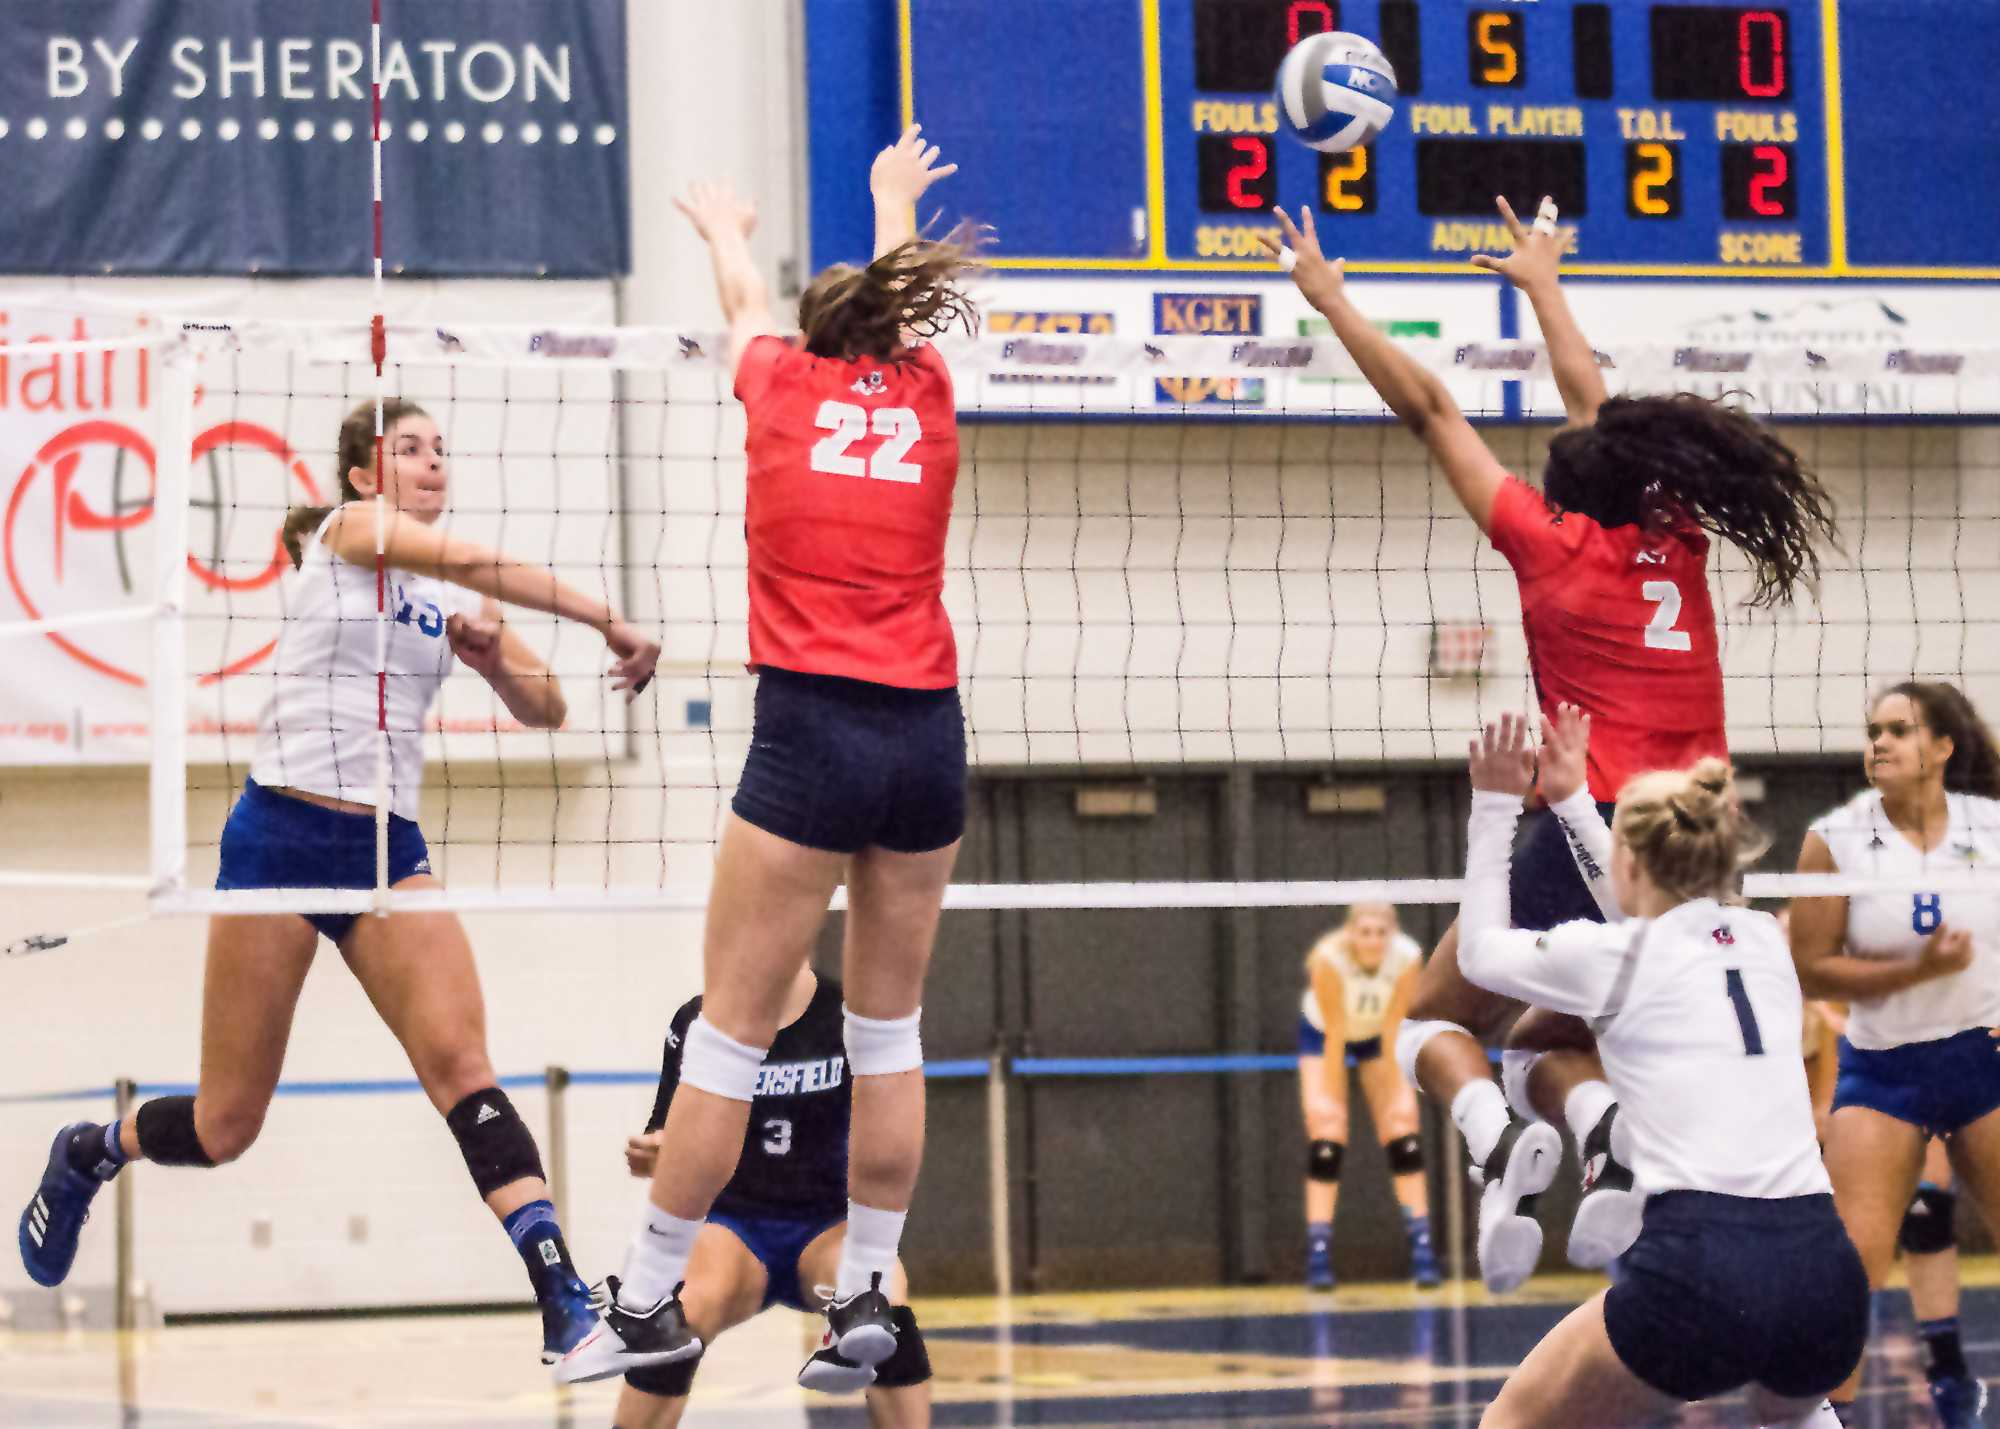 Roadrunners fall in straight sets on senior day